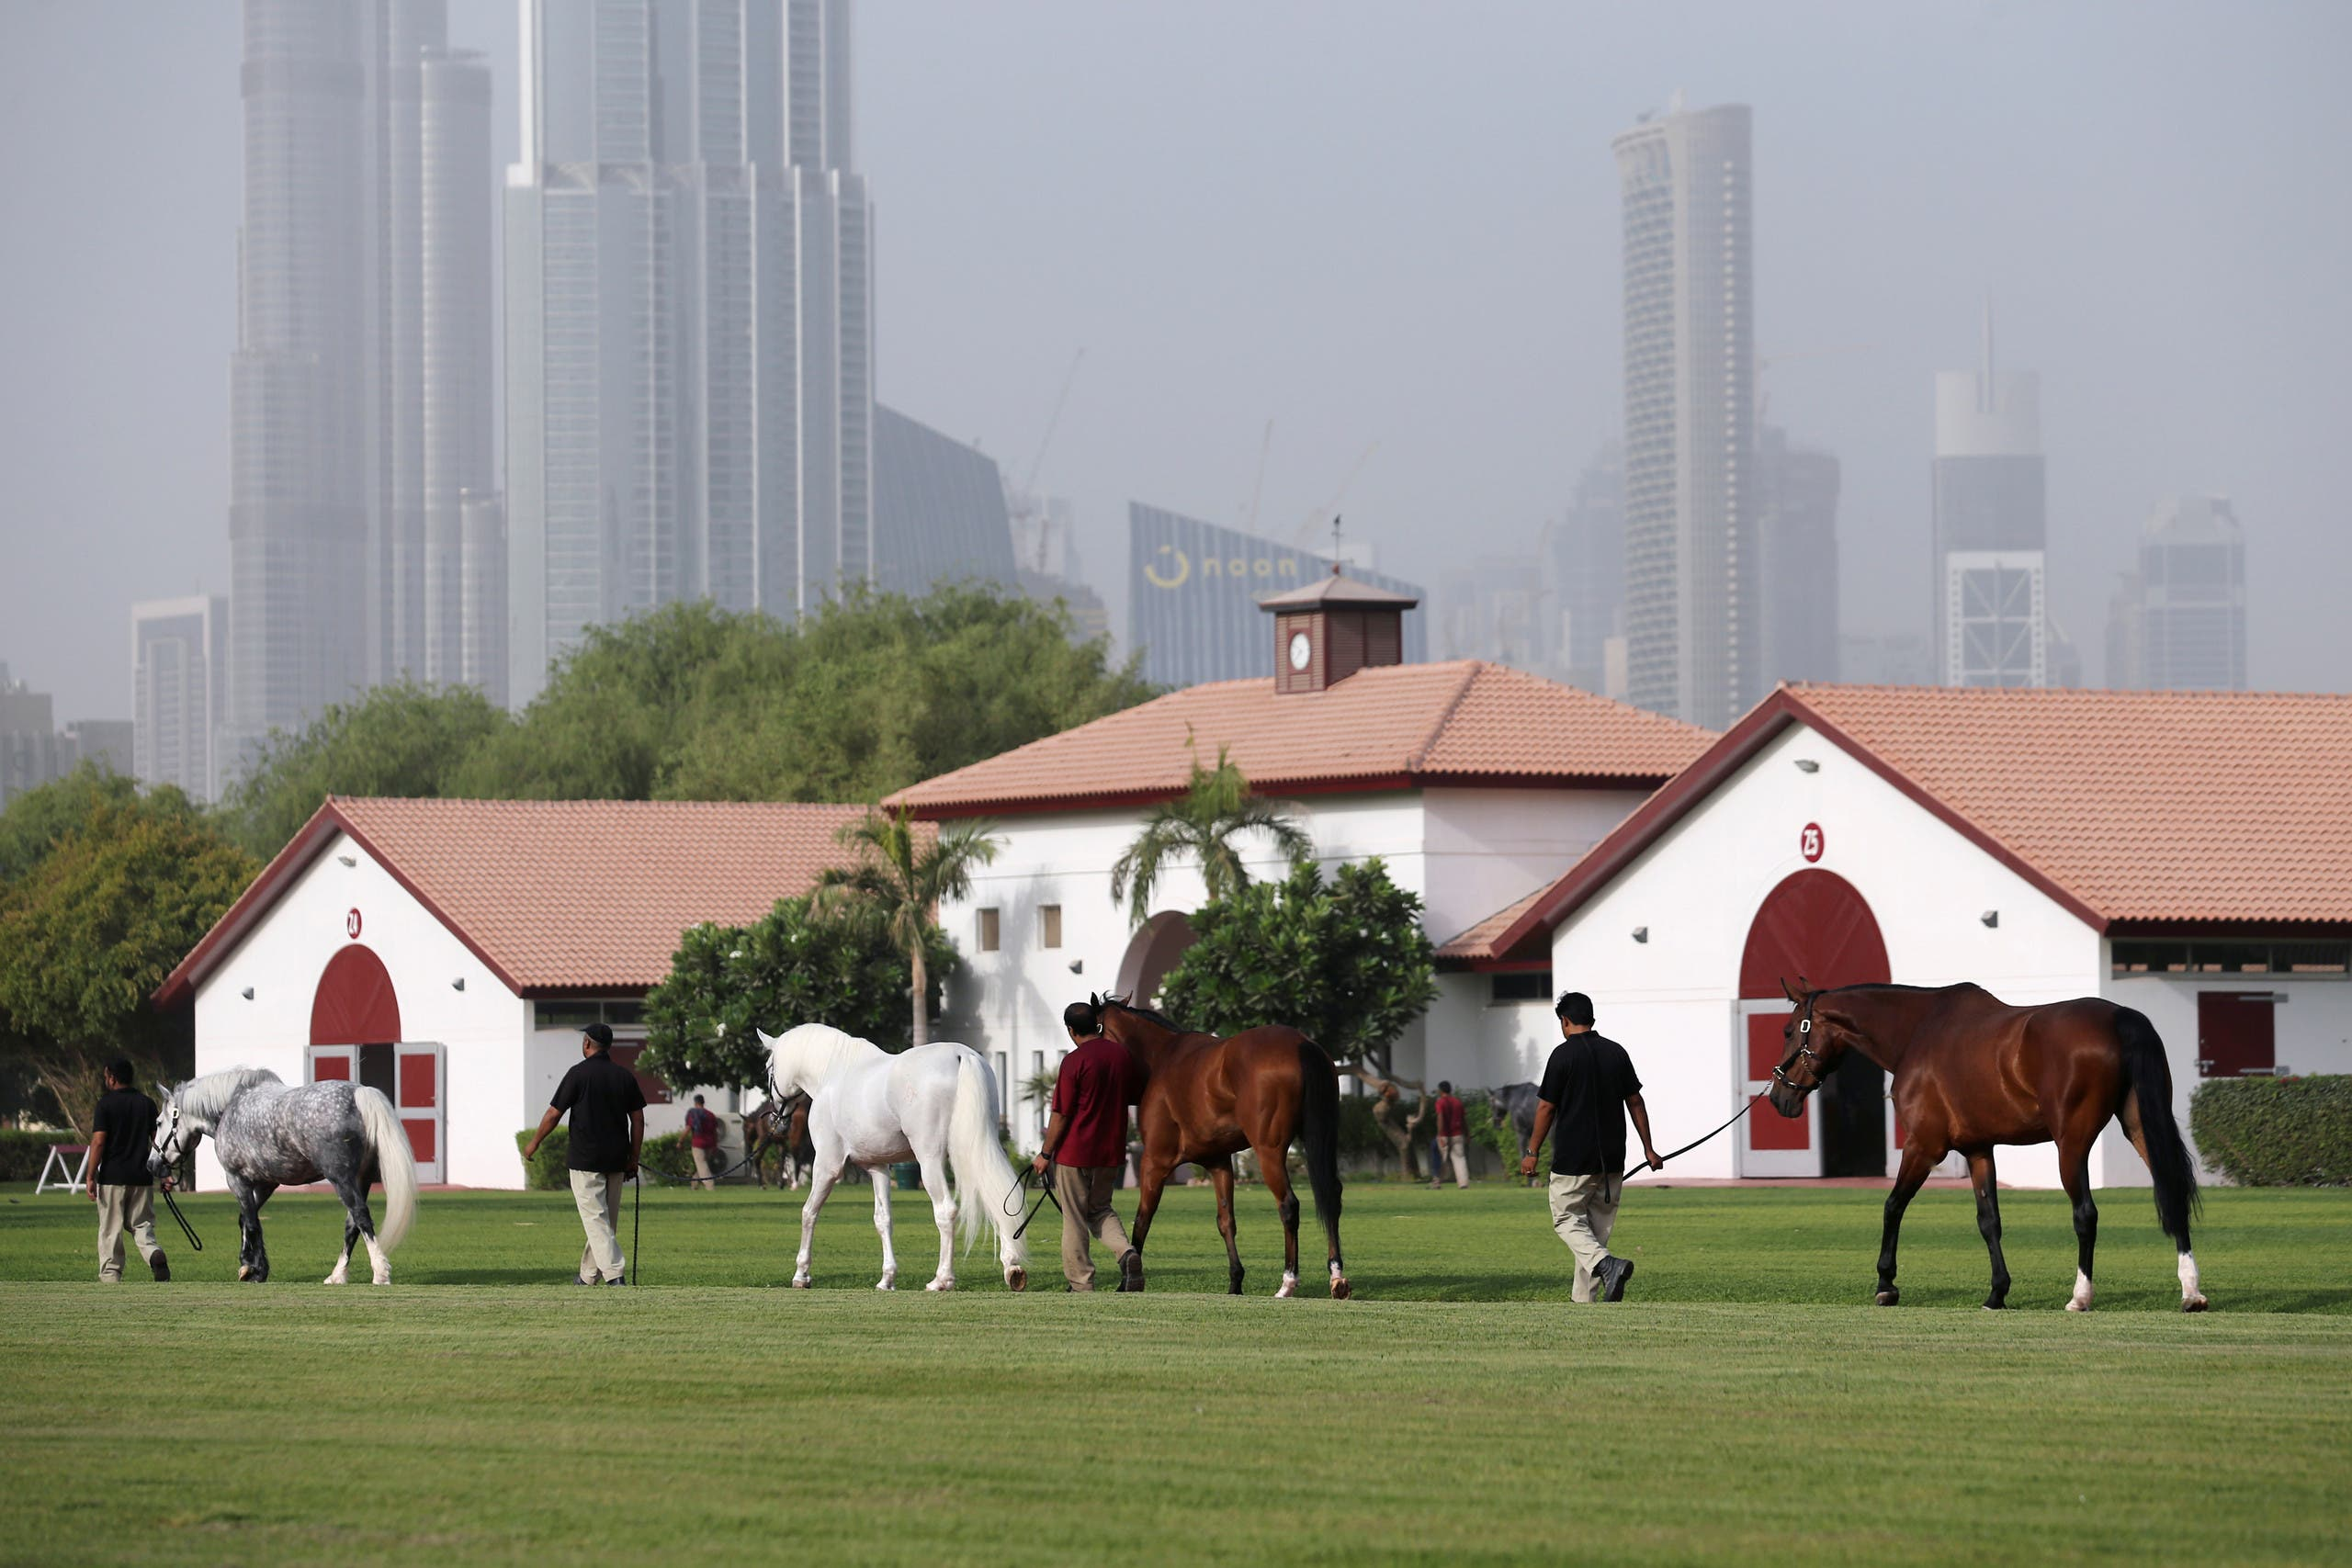 Horses take exercise at Dubai's Zabeel Stables, which offer equine cryotherapy, surrounding the horse in cold nitrogen mist, in Dubai, UAE August 18, 2019. Picture taken August 18, 2019. (Reuters)